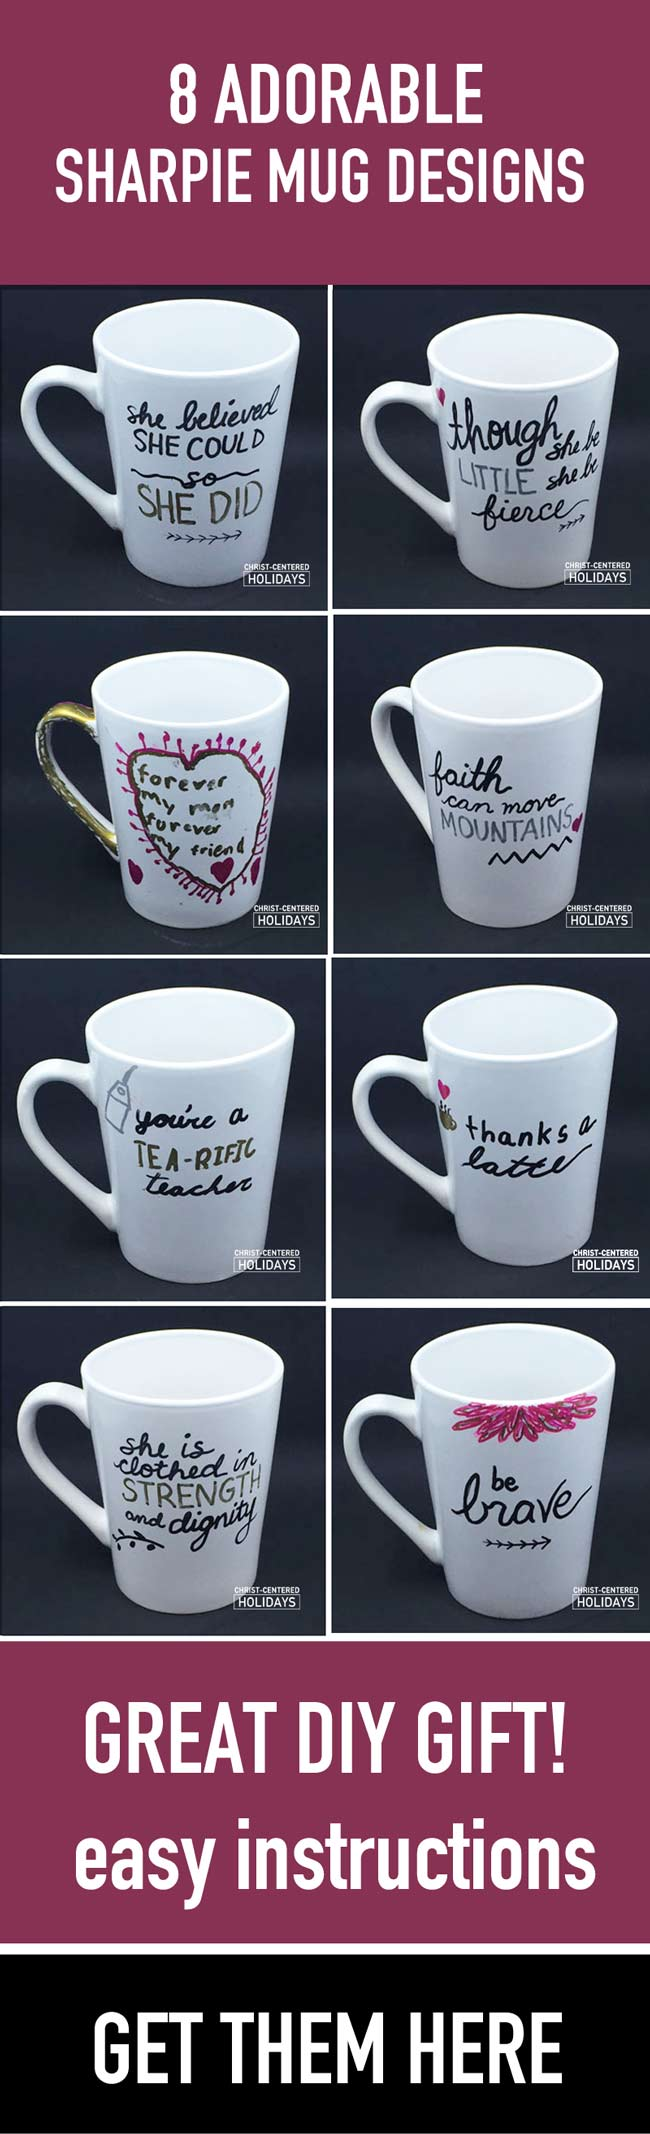 diy sharpie mugs | diy sharpie mug | sharpie mugs diy | sharpie mug | diy coffee mugs sharpie | diy coffee mugs